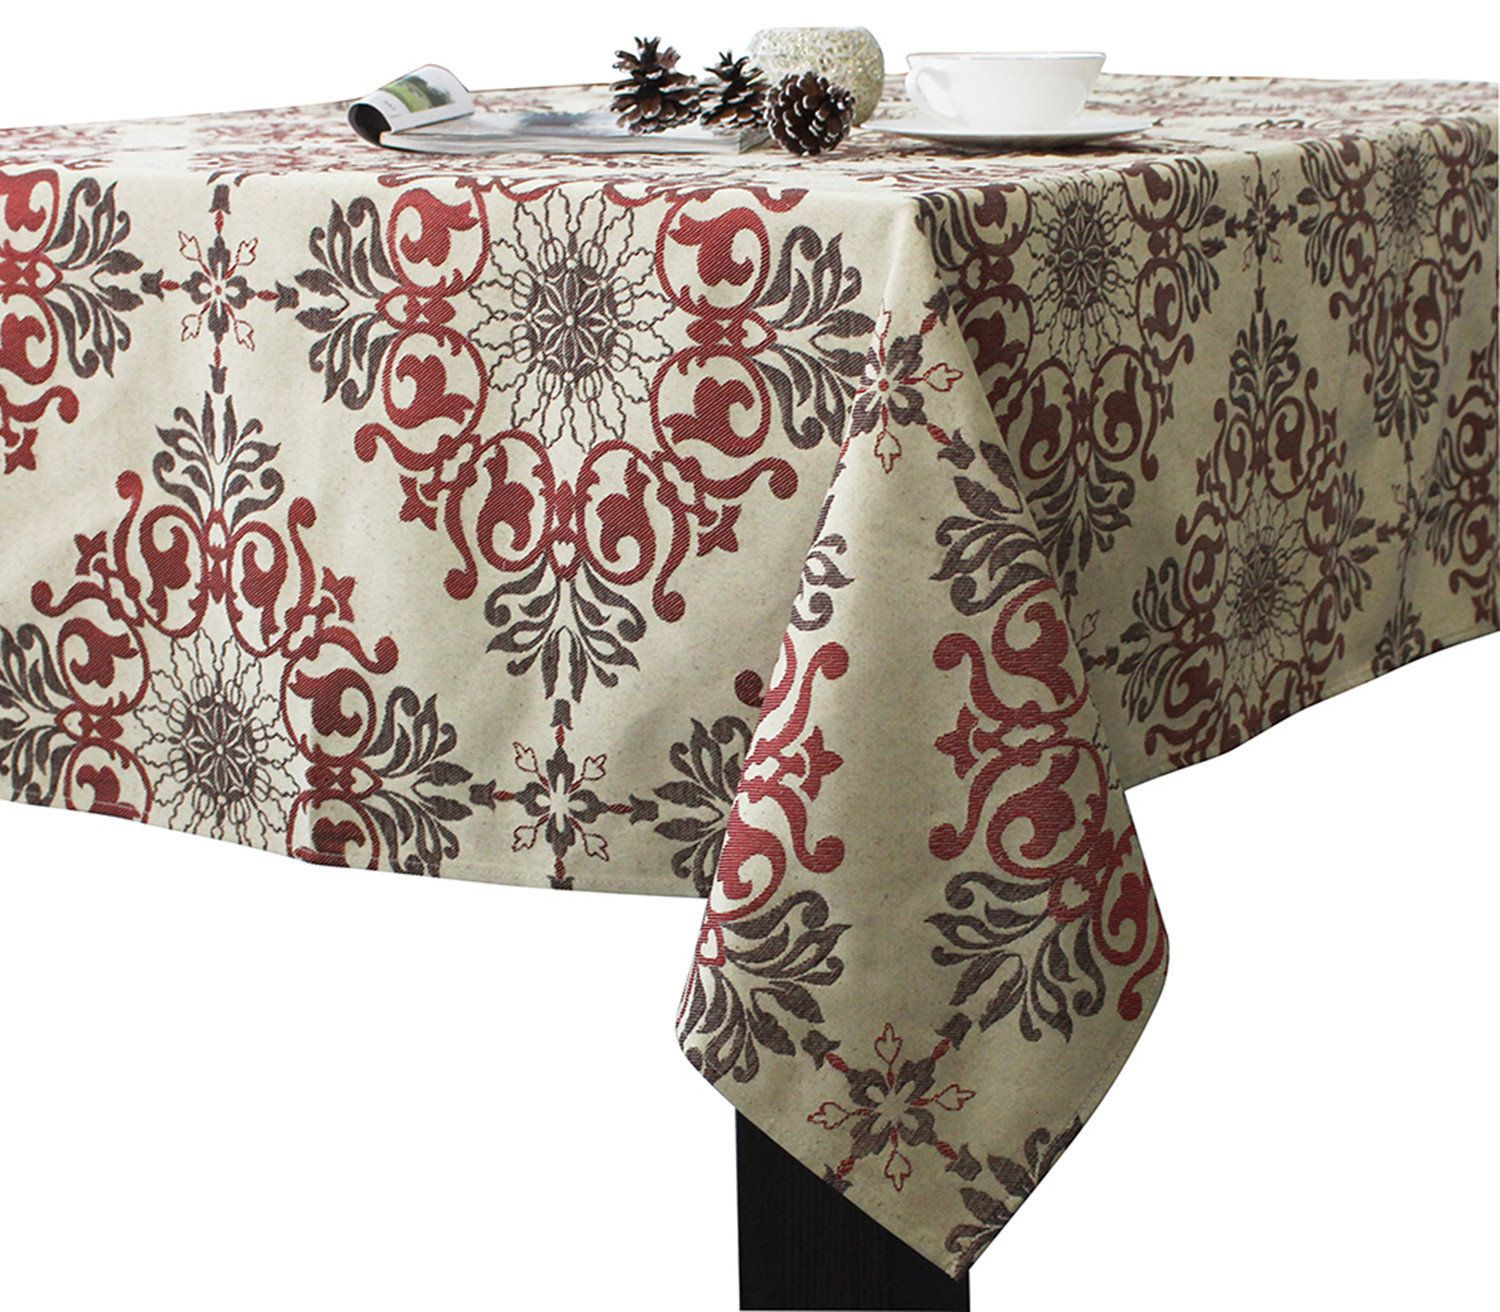 Assorted Sizes Jacquard Fabric Holiday Tablecloths Red Coffee Color By Direct2home New Tablecloth Fabric Table Cloth Jacquard Fabric